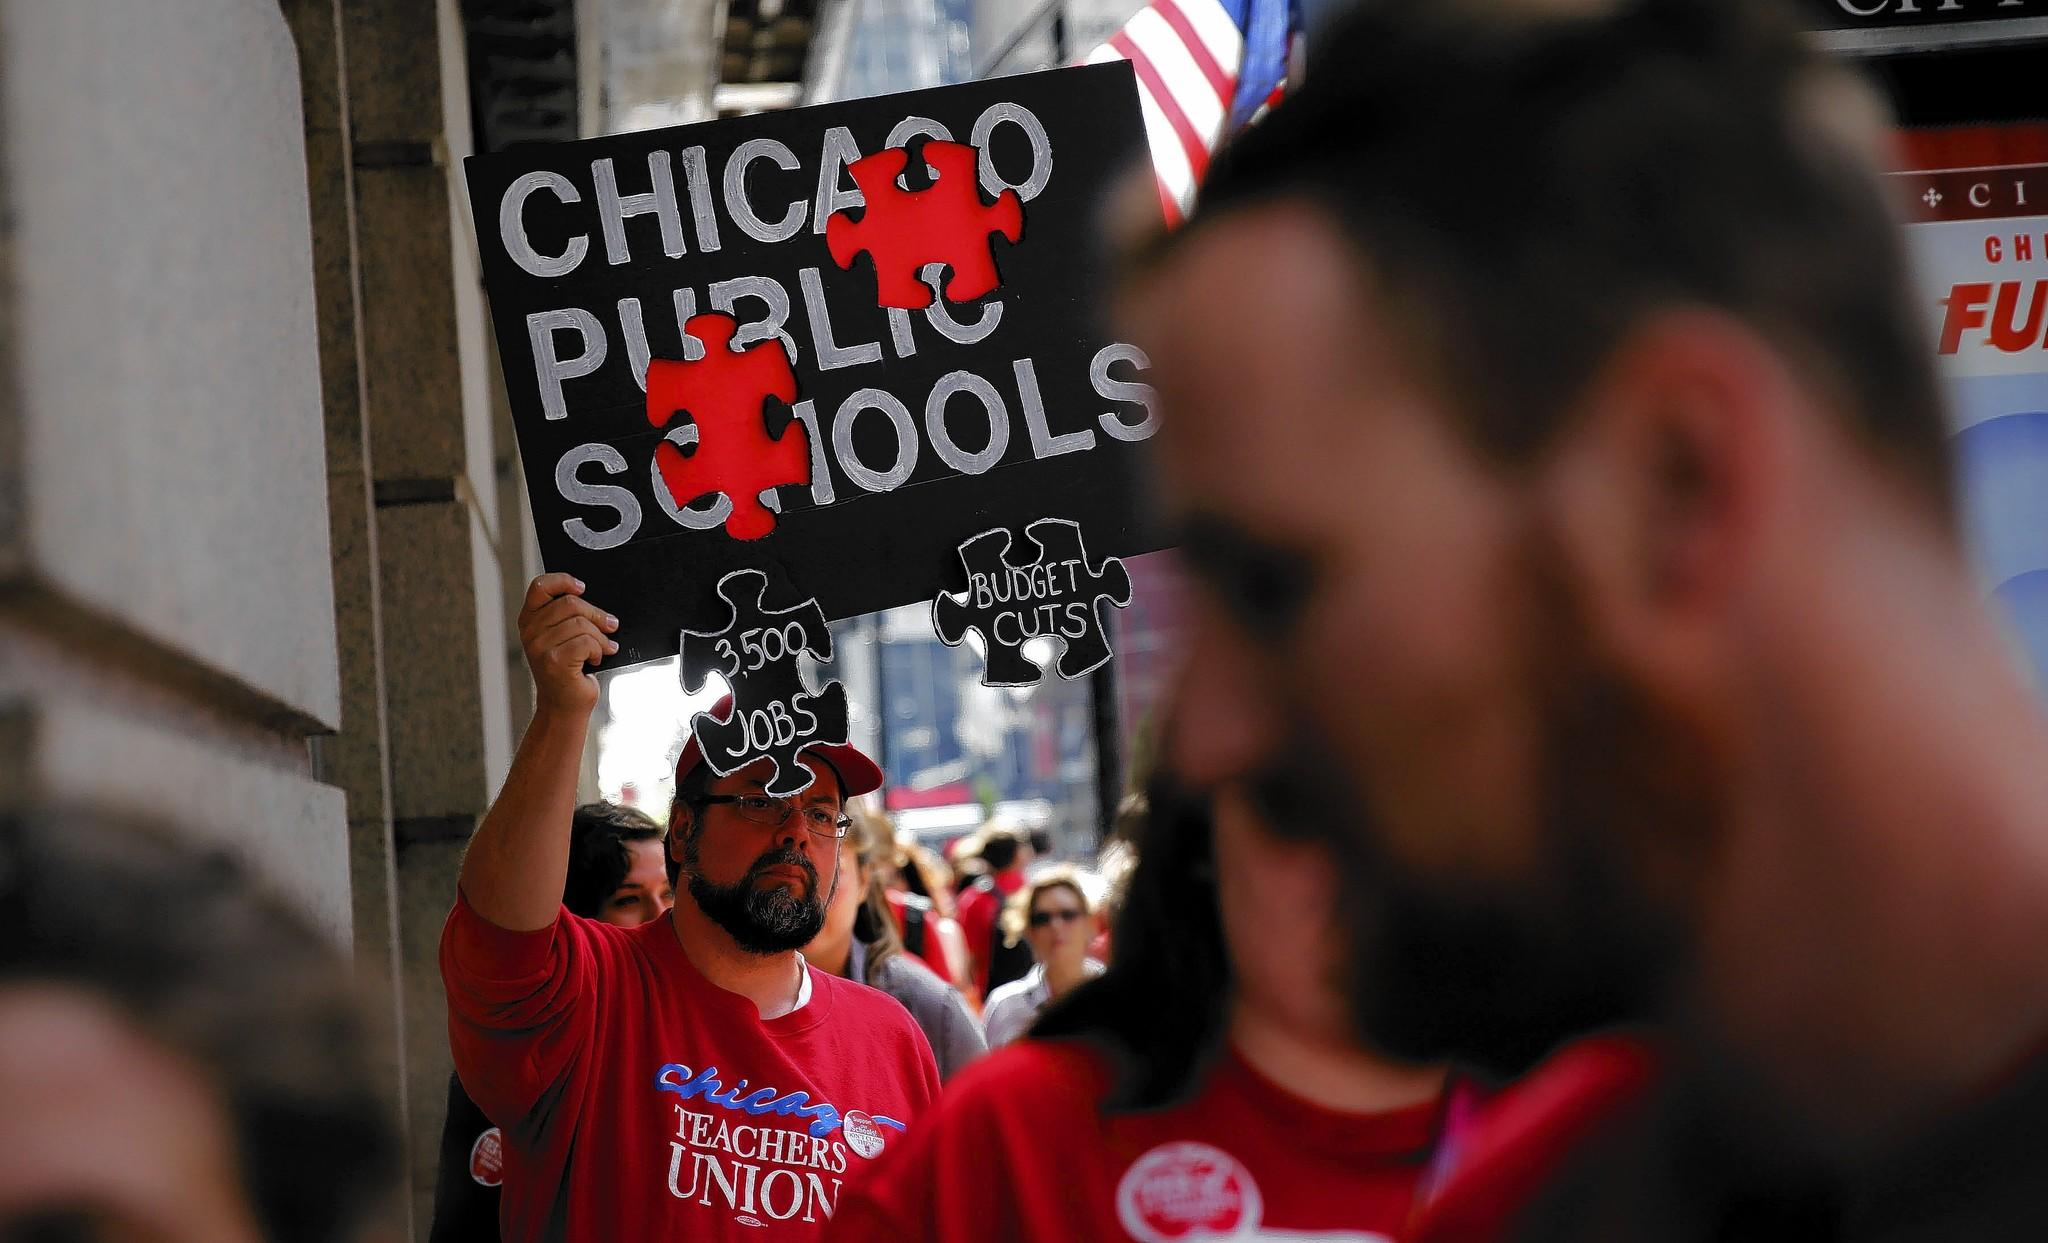 A $613 million payment to the Chicago Teachers Union pension fund is due by June 30.